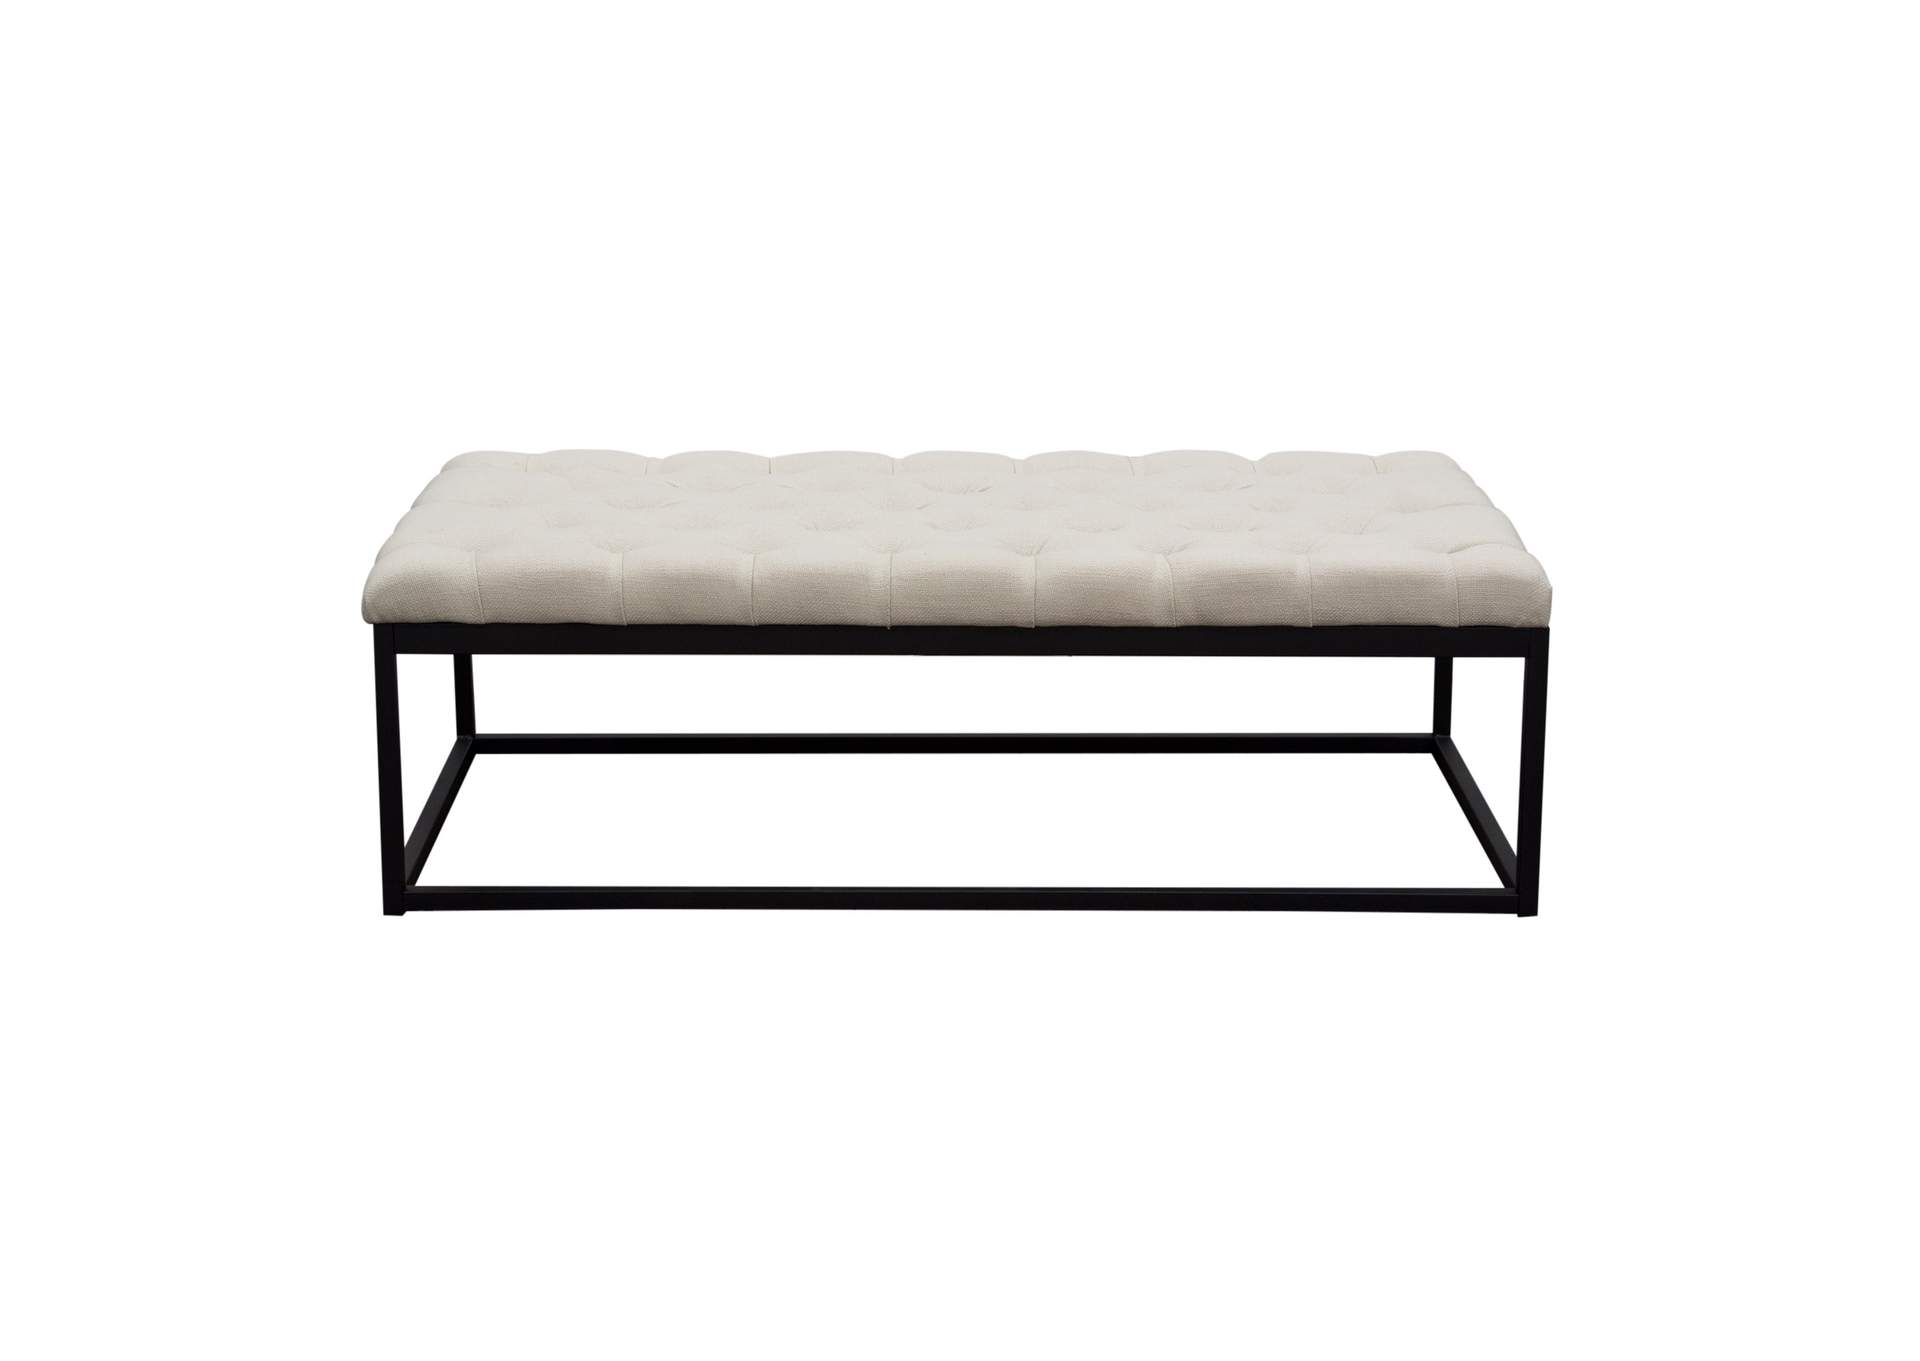 Mateo Desert Sand Linen Black Powder Coat Metal Large Tufted Bench,Diamond Sofa